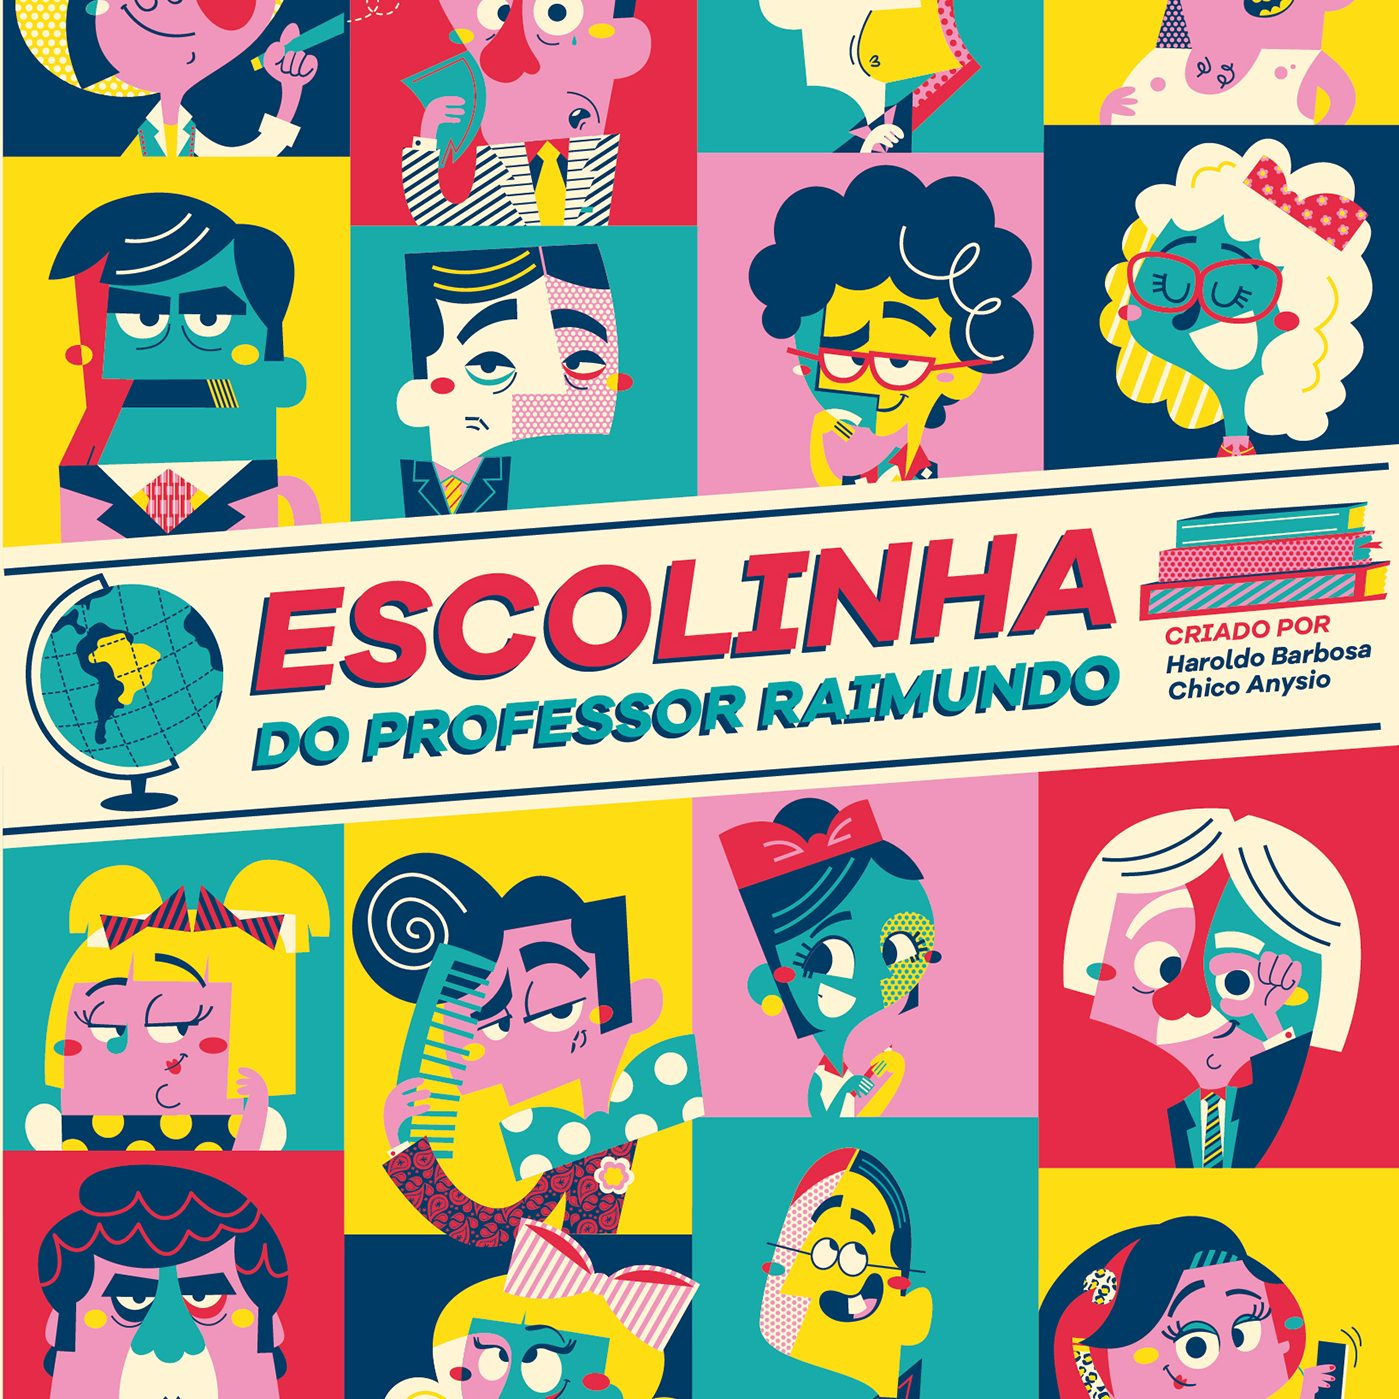 Ilustradora recria personagens da Escolinha do Professor Raimundo